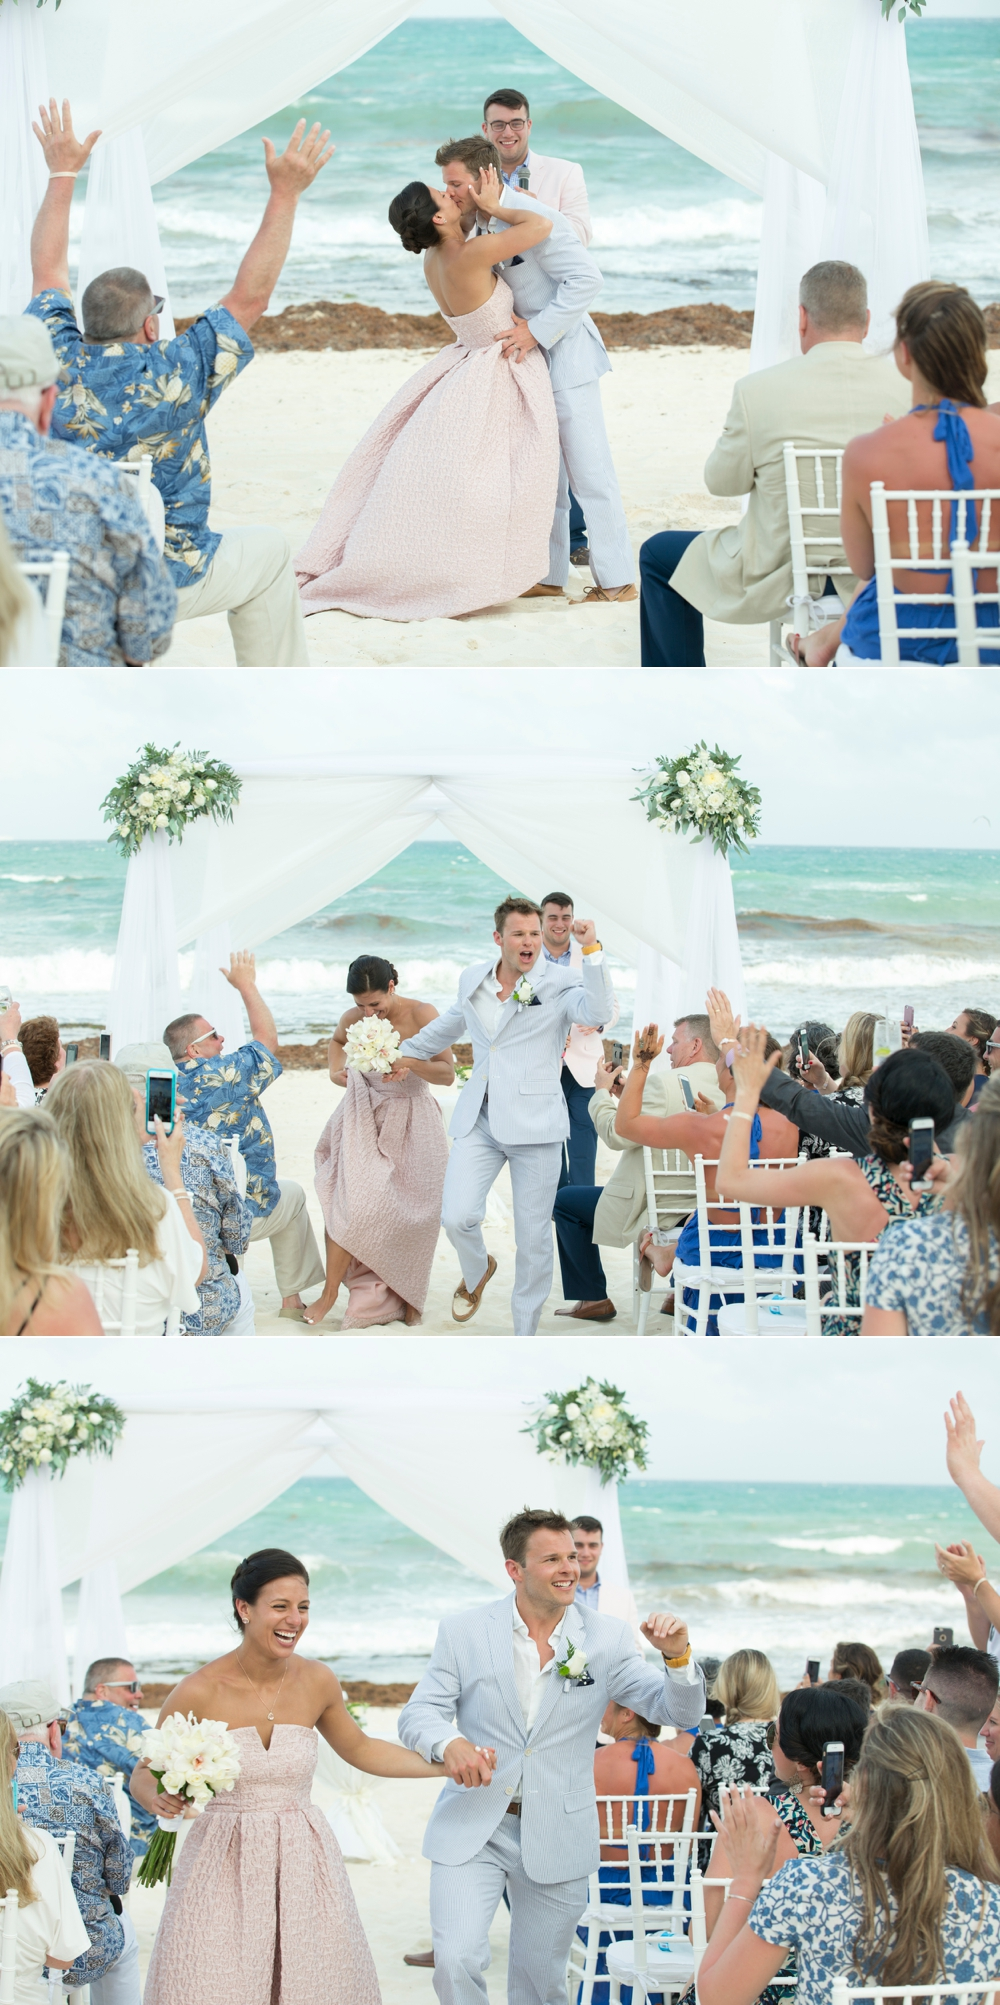 SomerbyJonesPhotography_IberostarGrandHotelParaiso_Mexico_Wedding_0027.jpg